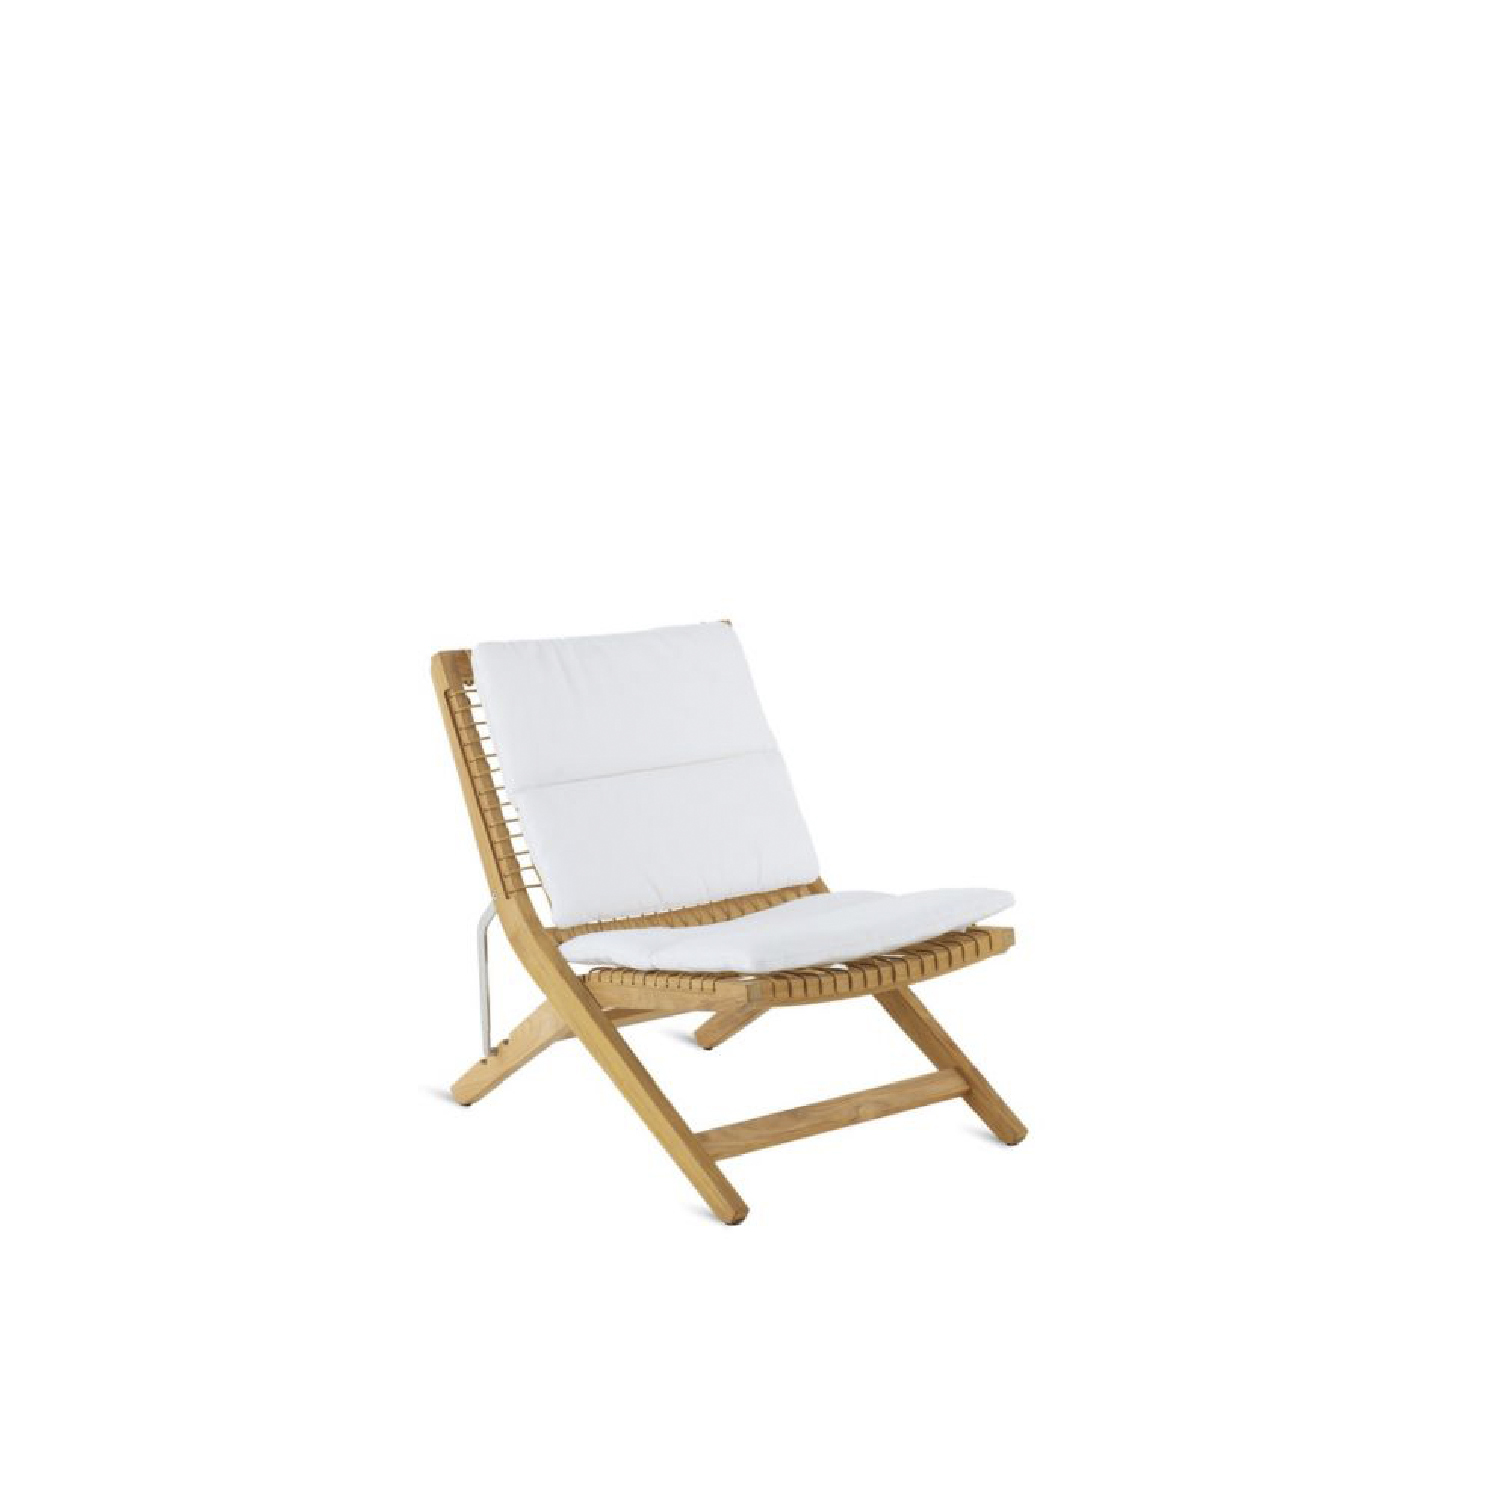 Synthesis Folding Deckchair - Synthesis is a rich, versatile line characterized by the original combination of teak and synthetic fibre. This union creates a unique large mesh product, creating an elegant collection of pure designs.  Structure: teak and Synthetic fibre WaProLace® wicker natural. Cushions: removable covers in 100% acrylic fabric, Diamante colour. | Matter of Stuff